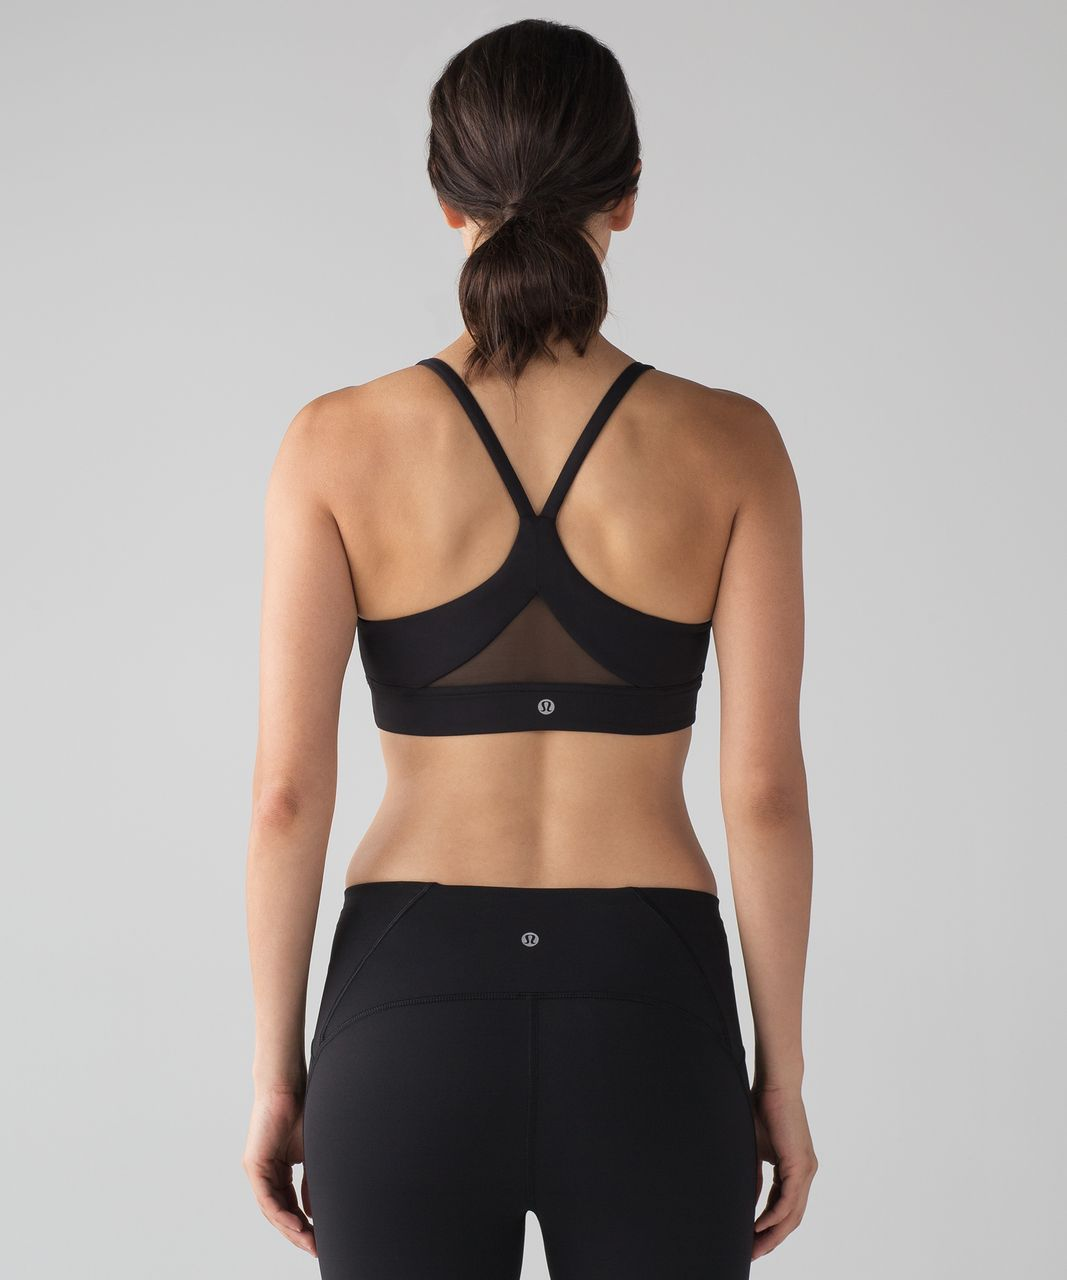 704054b4815dc Lululemon Train Times Bra - Black - lulu fanatics